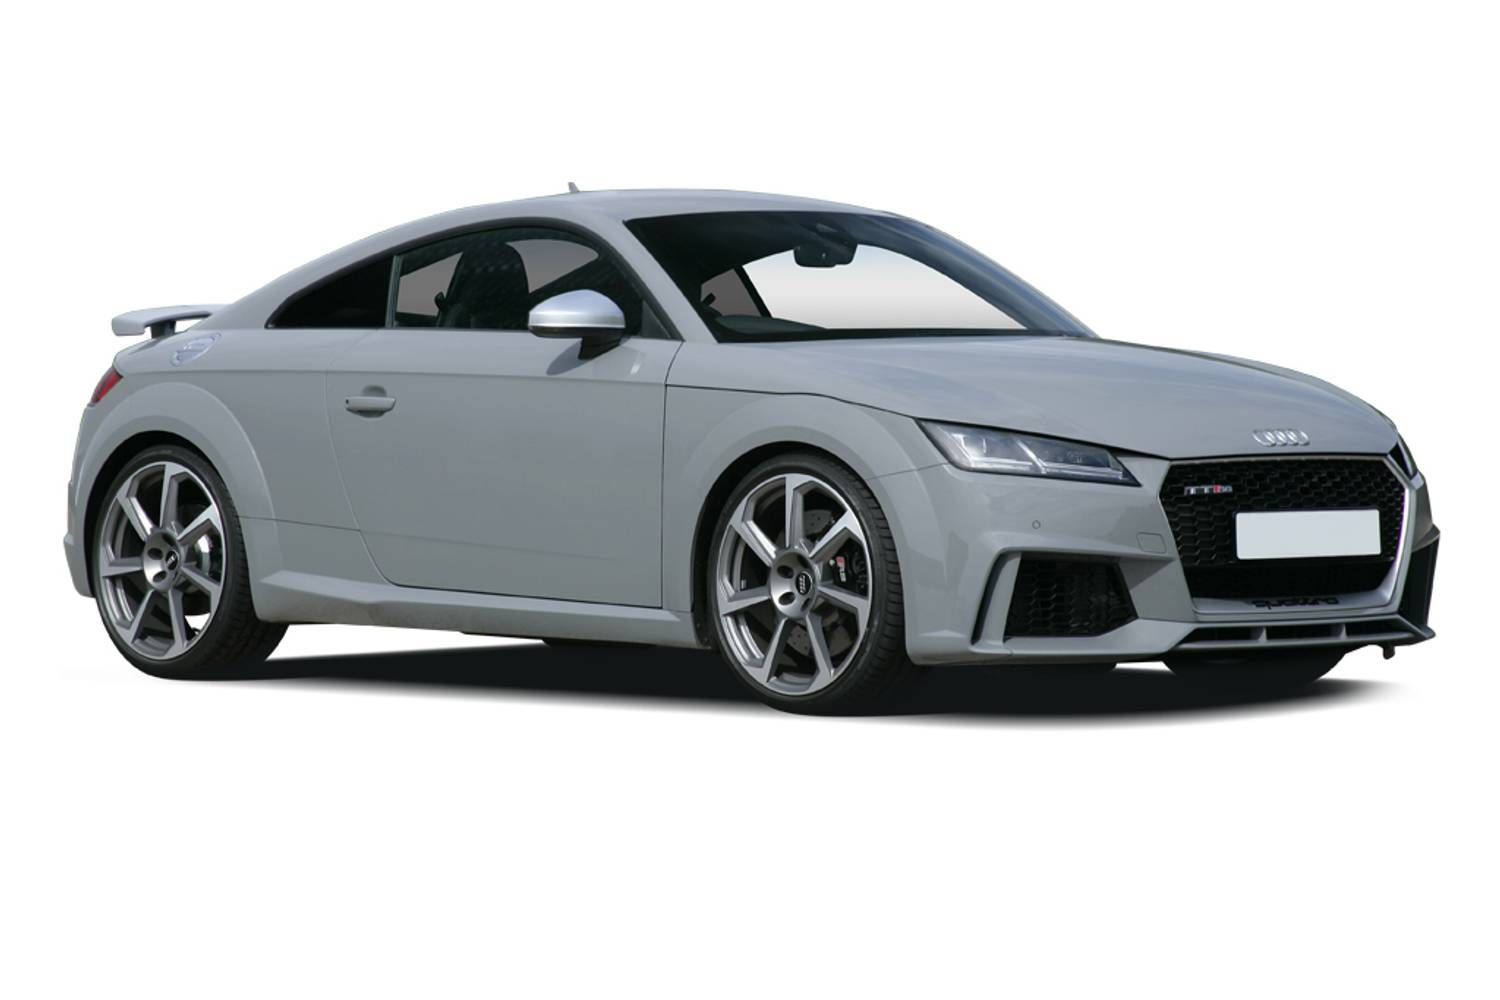 New Audi Tt Rs Coupe Tt Rs Tfsi Quattro Audi Sport Ed 2 Door S Tronic 2019 For Sale